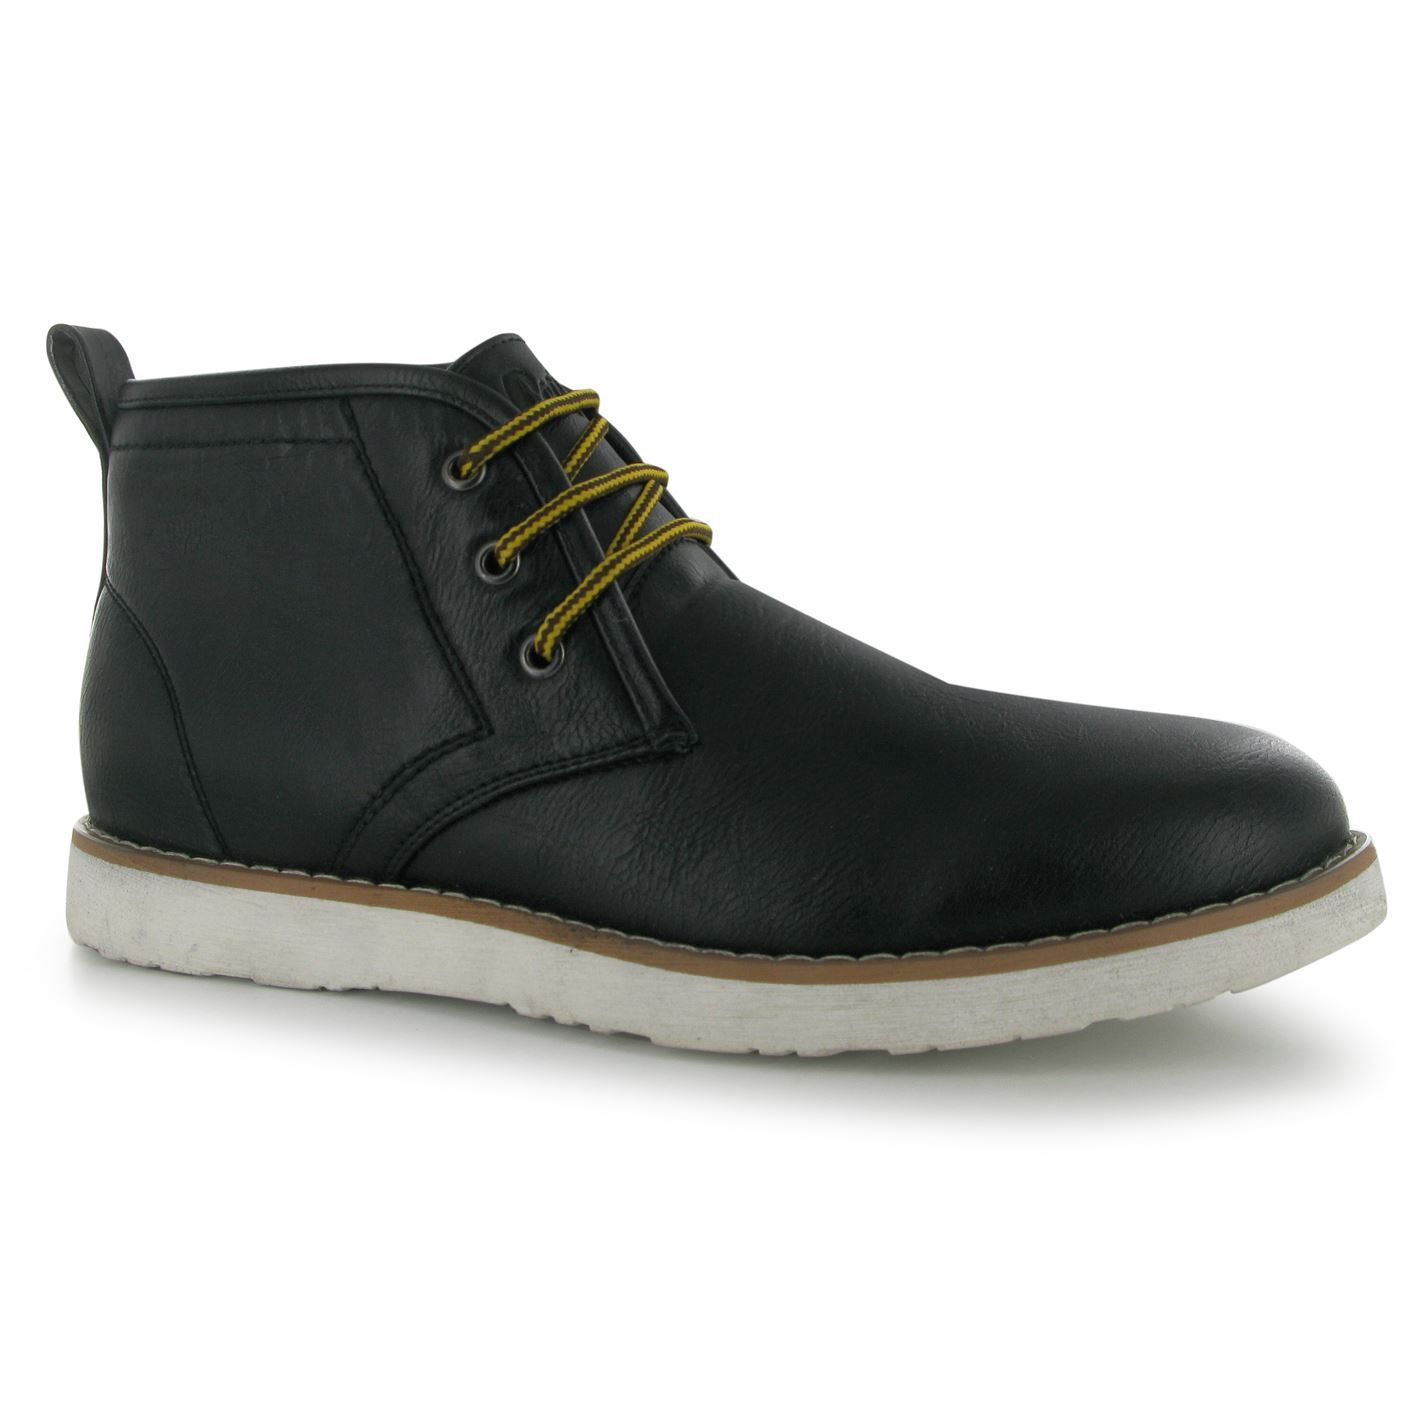 Lee Cooper Mens C PU Desert Boots Ankle Lace Up Casual ...